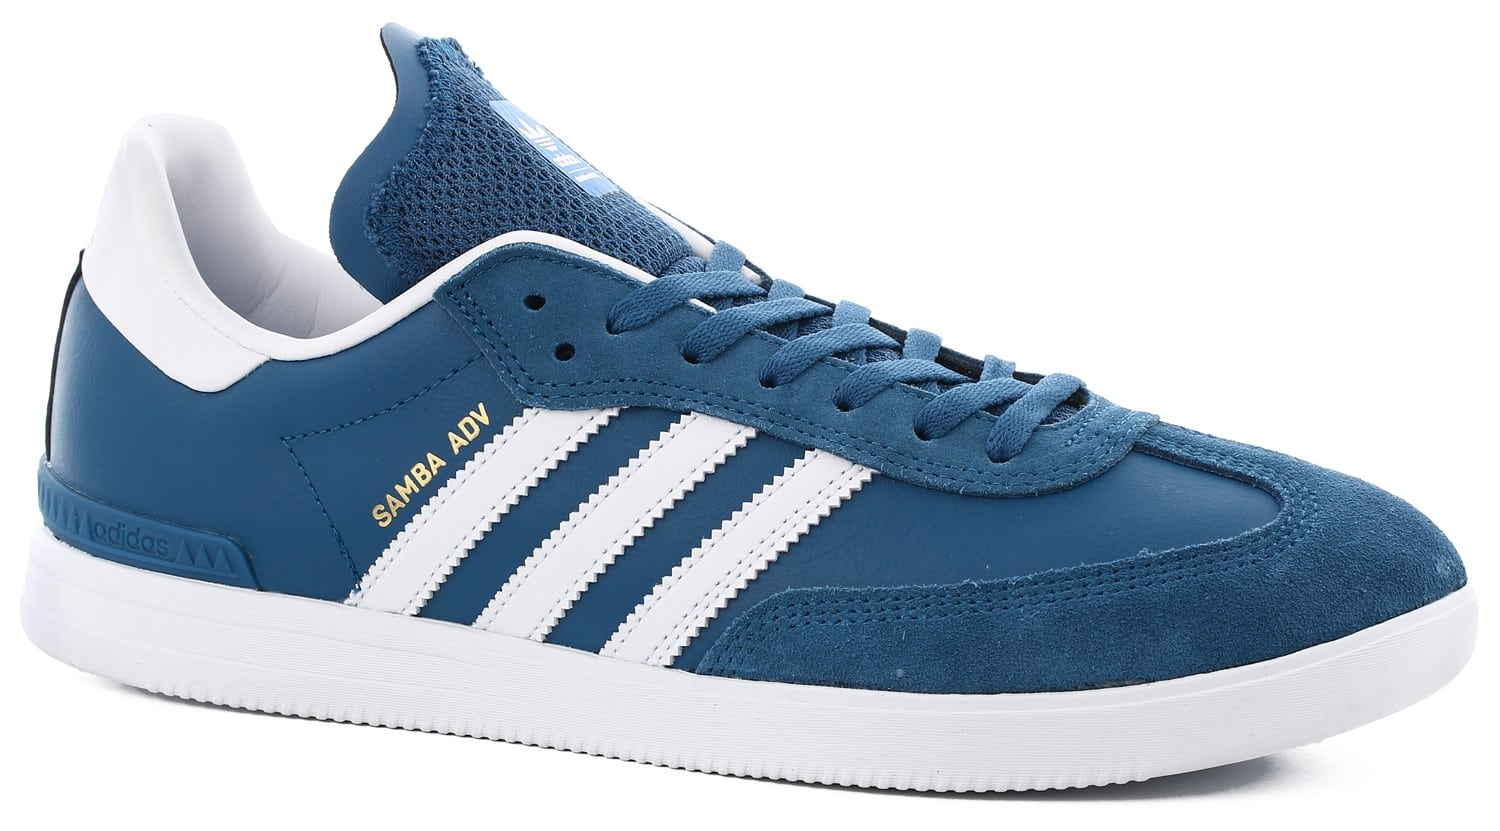 adidas samba adv skate shoes core blue footwear white. Black Bedroom Furniture Sets. Home Design Ideas